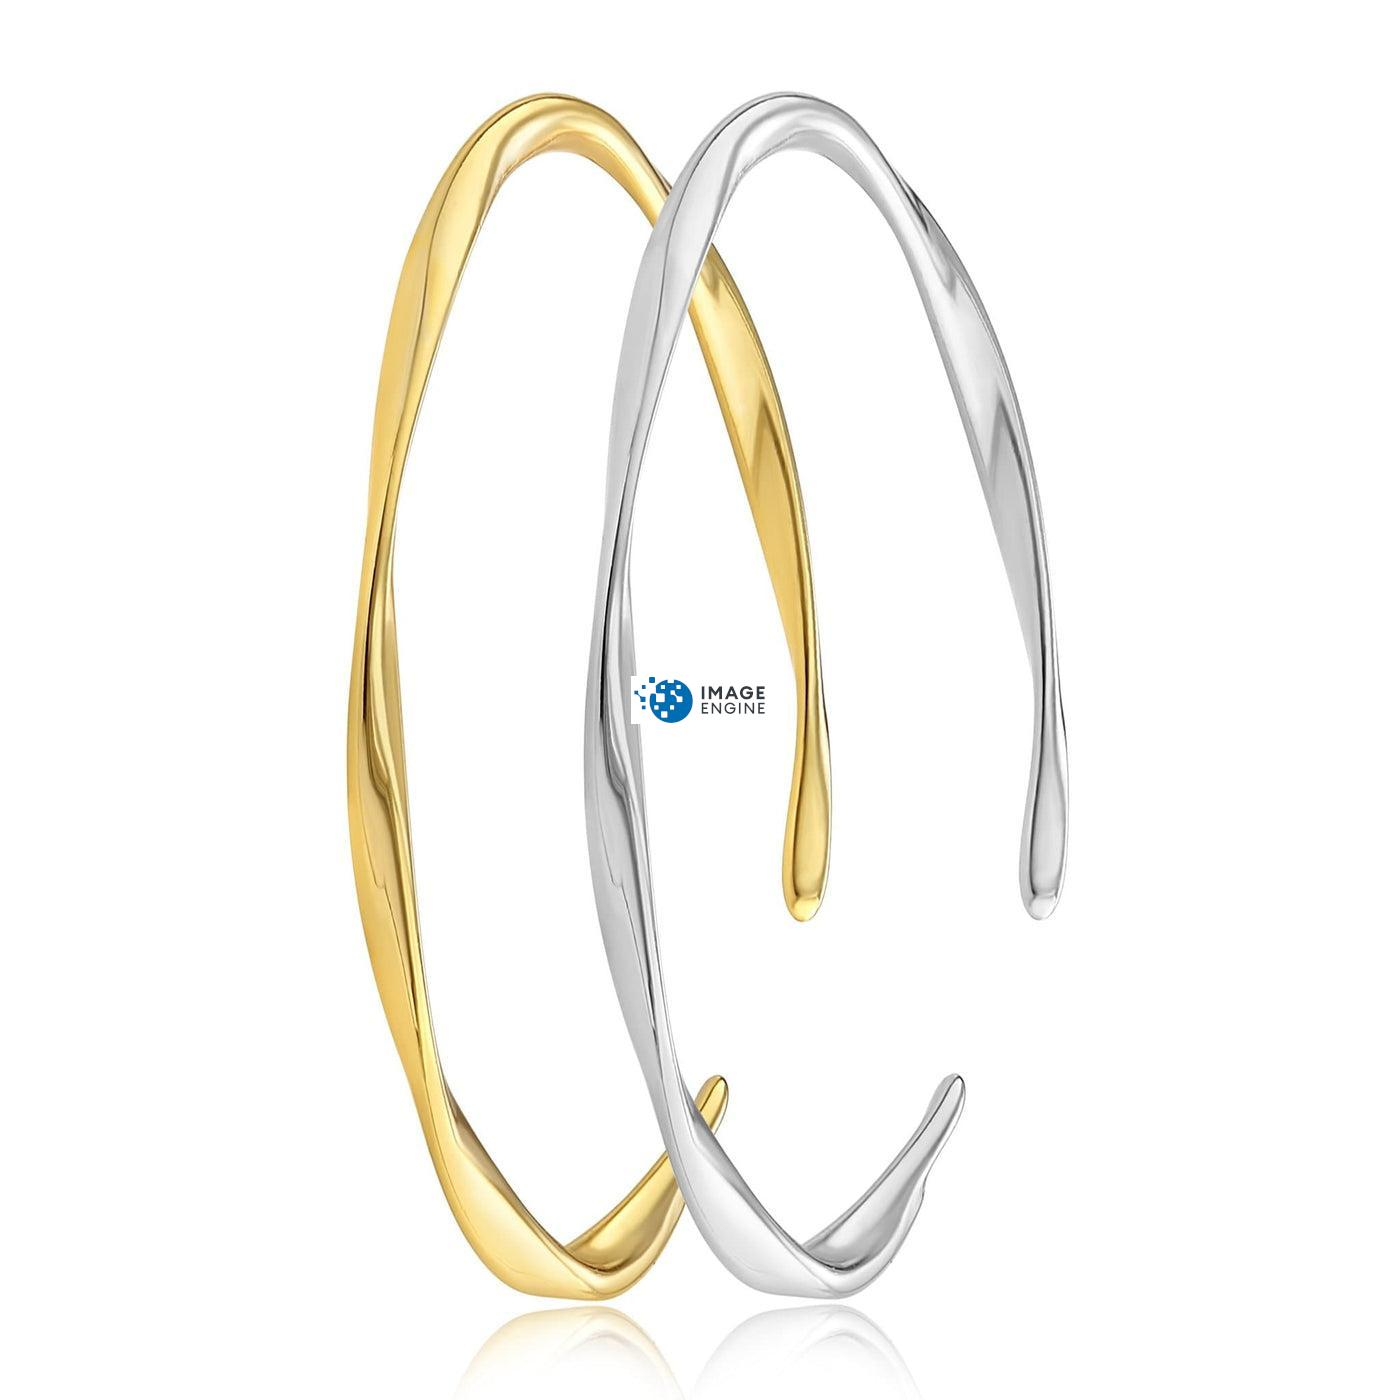 Olivia Twist Ring - Side by Side - 18K Yellow Gold and 925 Sterling Silver